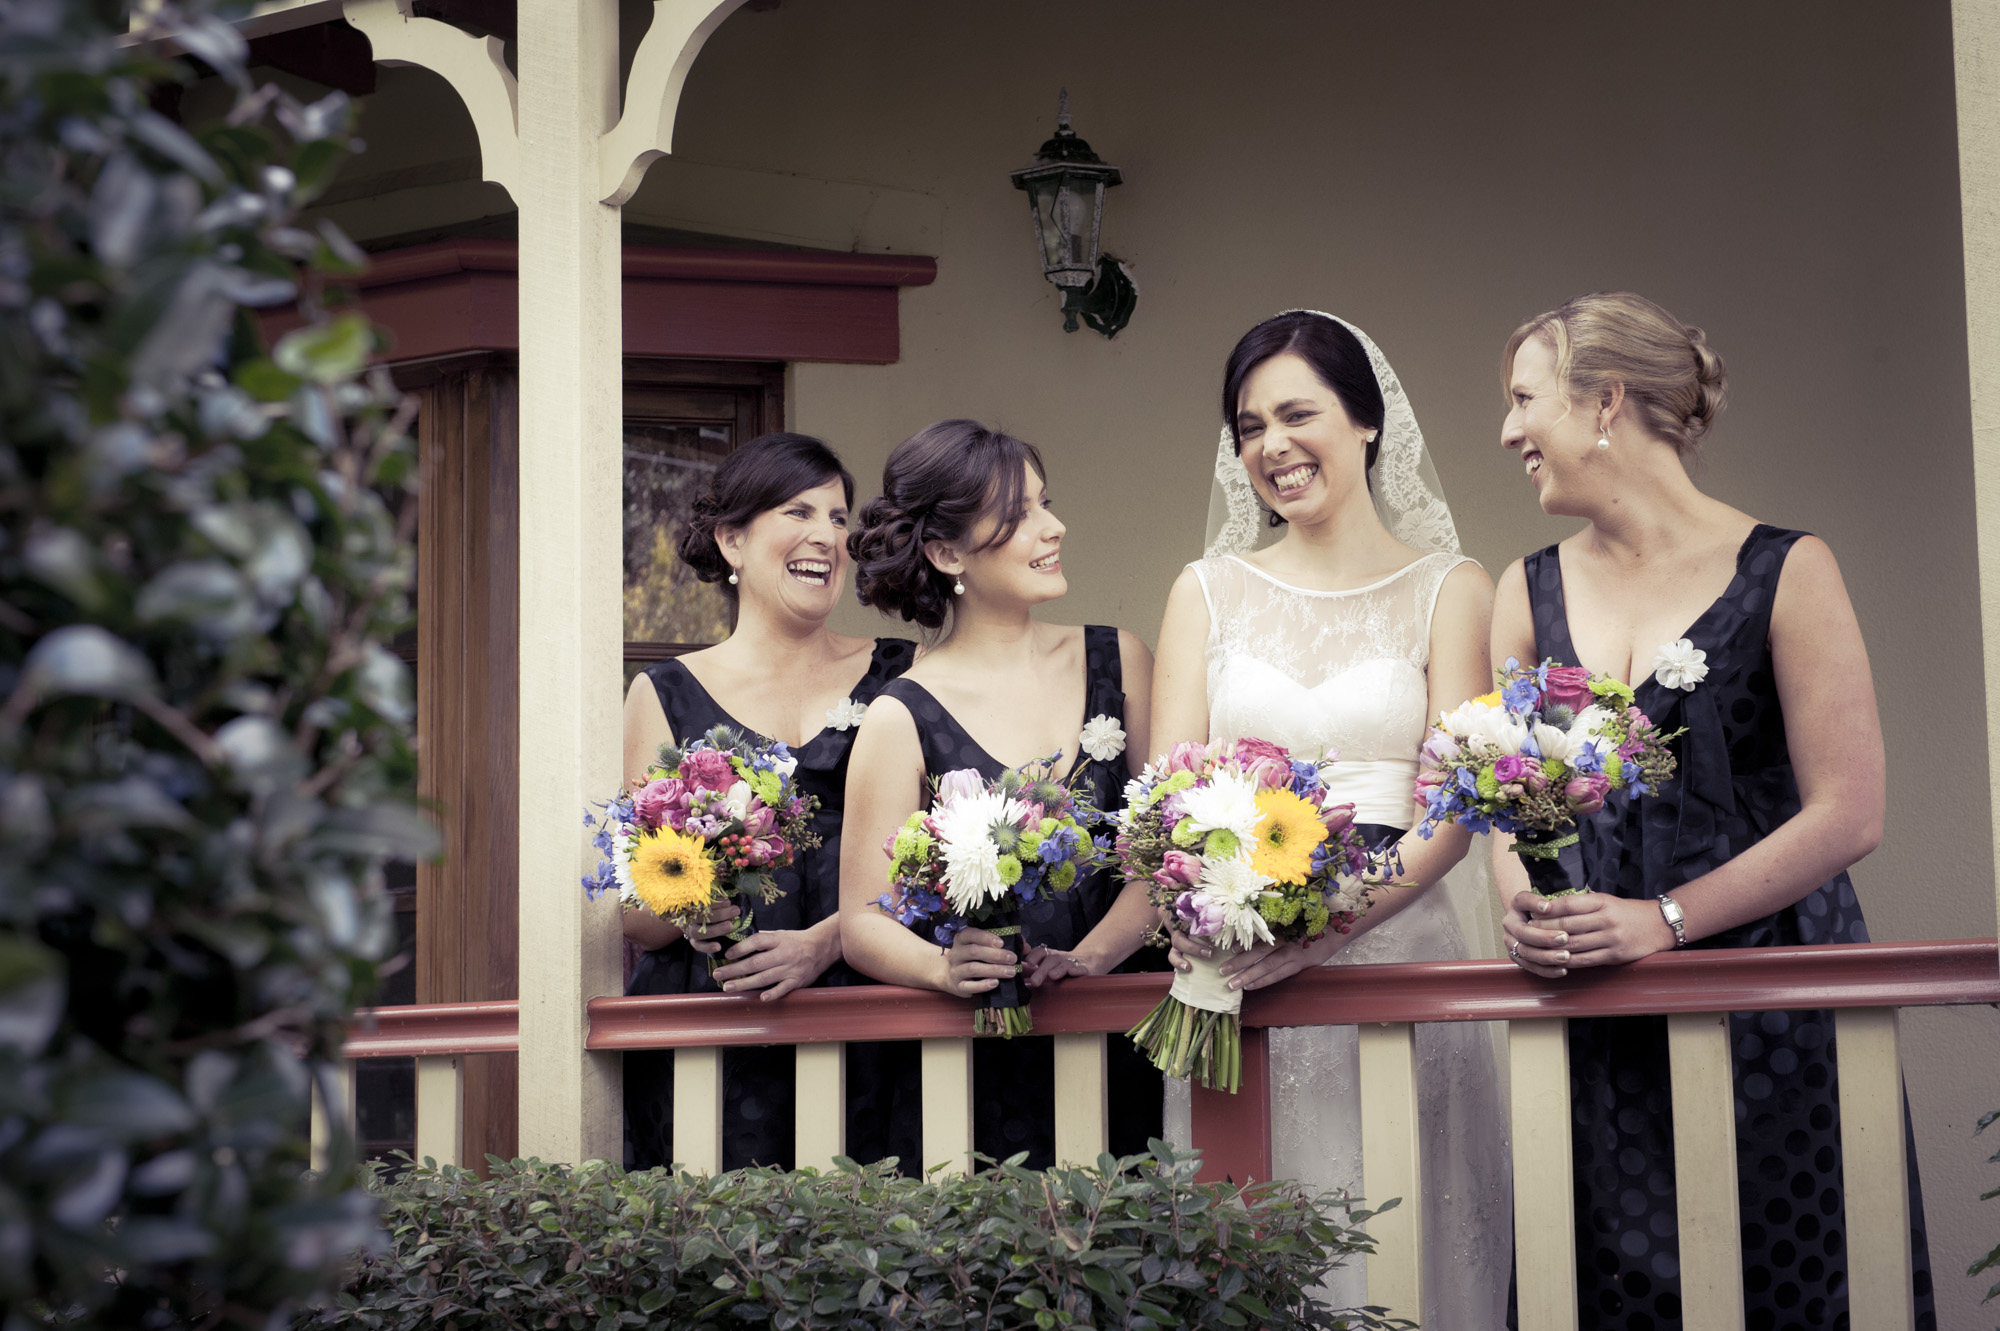 bridesmaids in black with bright bouquets  |  brisbane wedding photography  |  fuschia photography